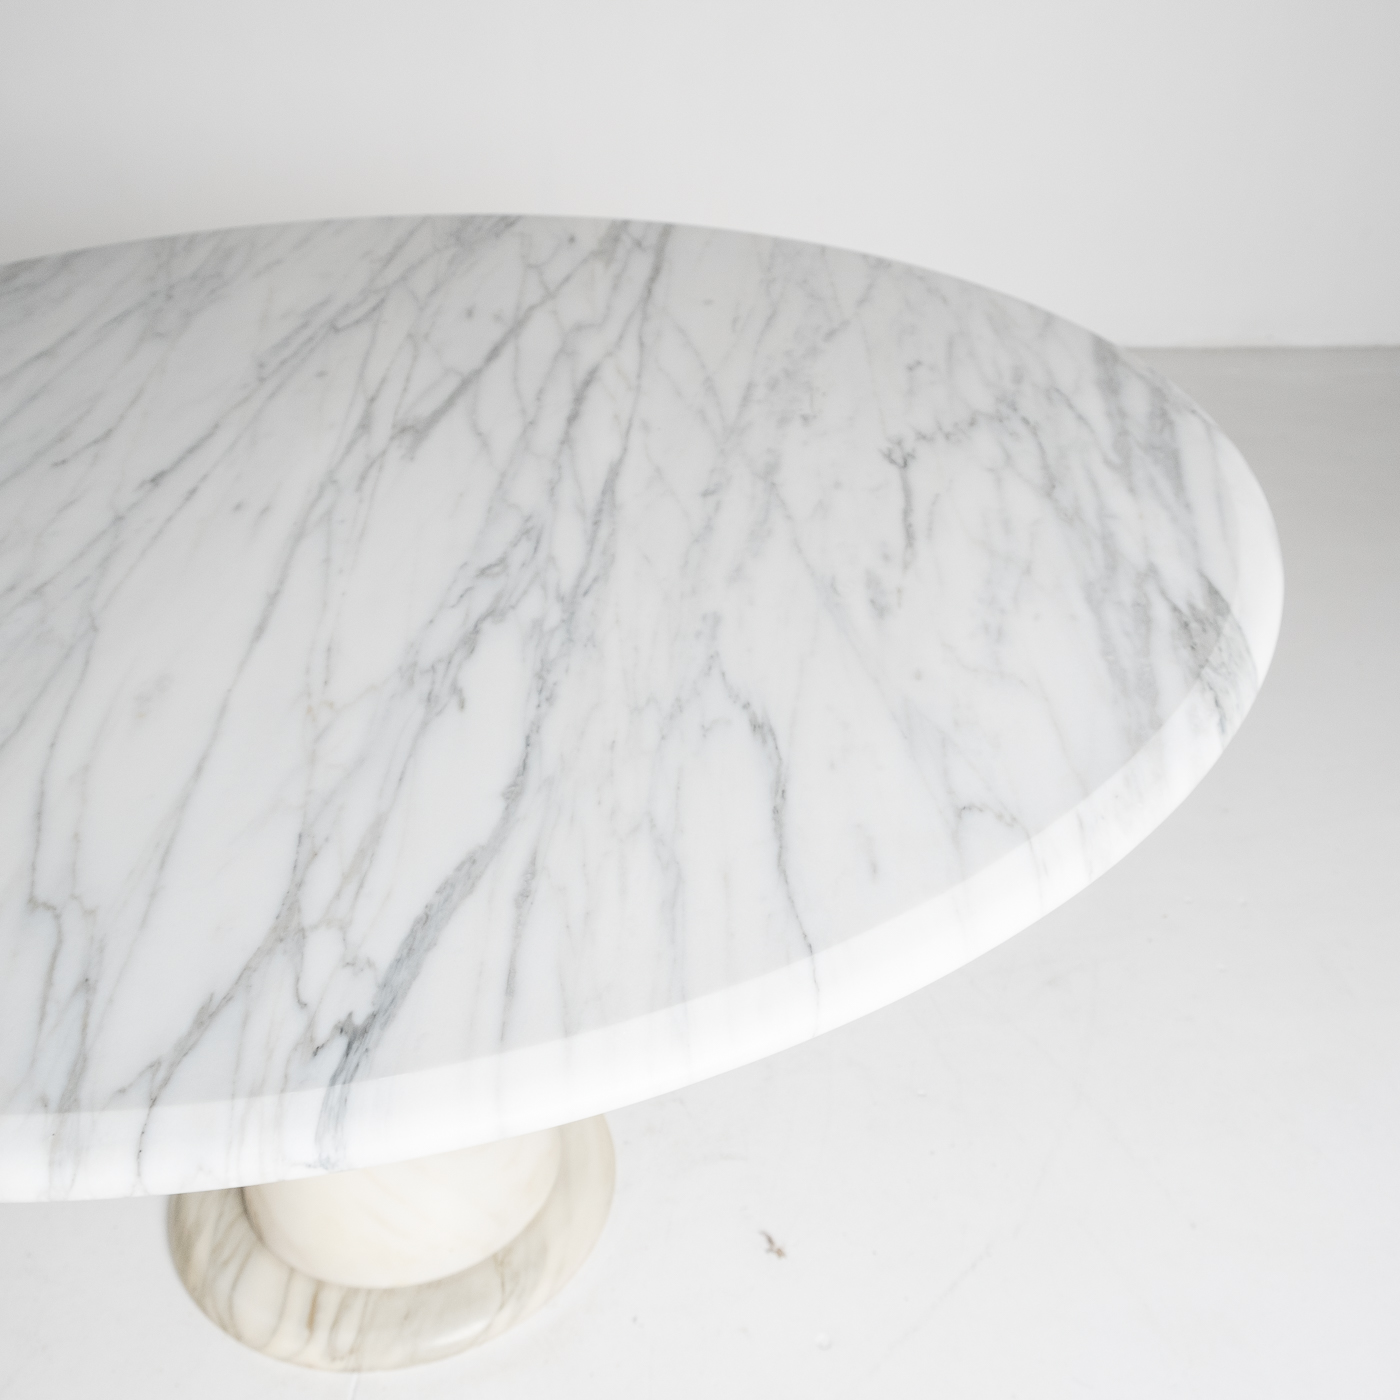 Round Marble Dining Table In The Style Of The M1 By Angelo Mangiarotti In White Calacatta Marble, 1970s, Italy 91